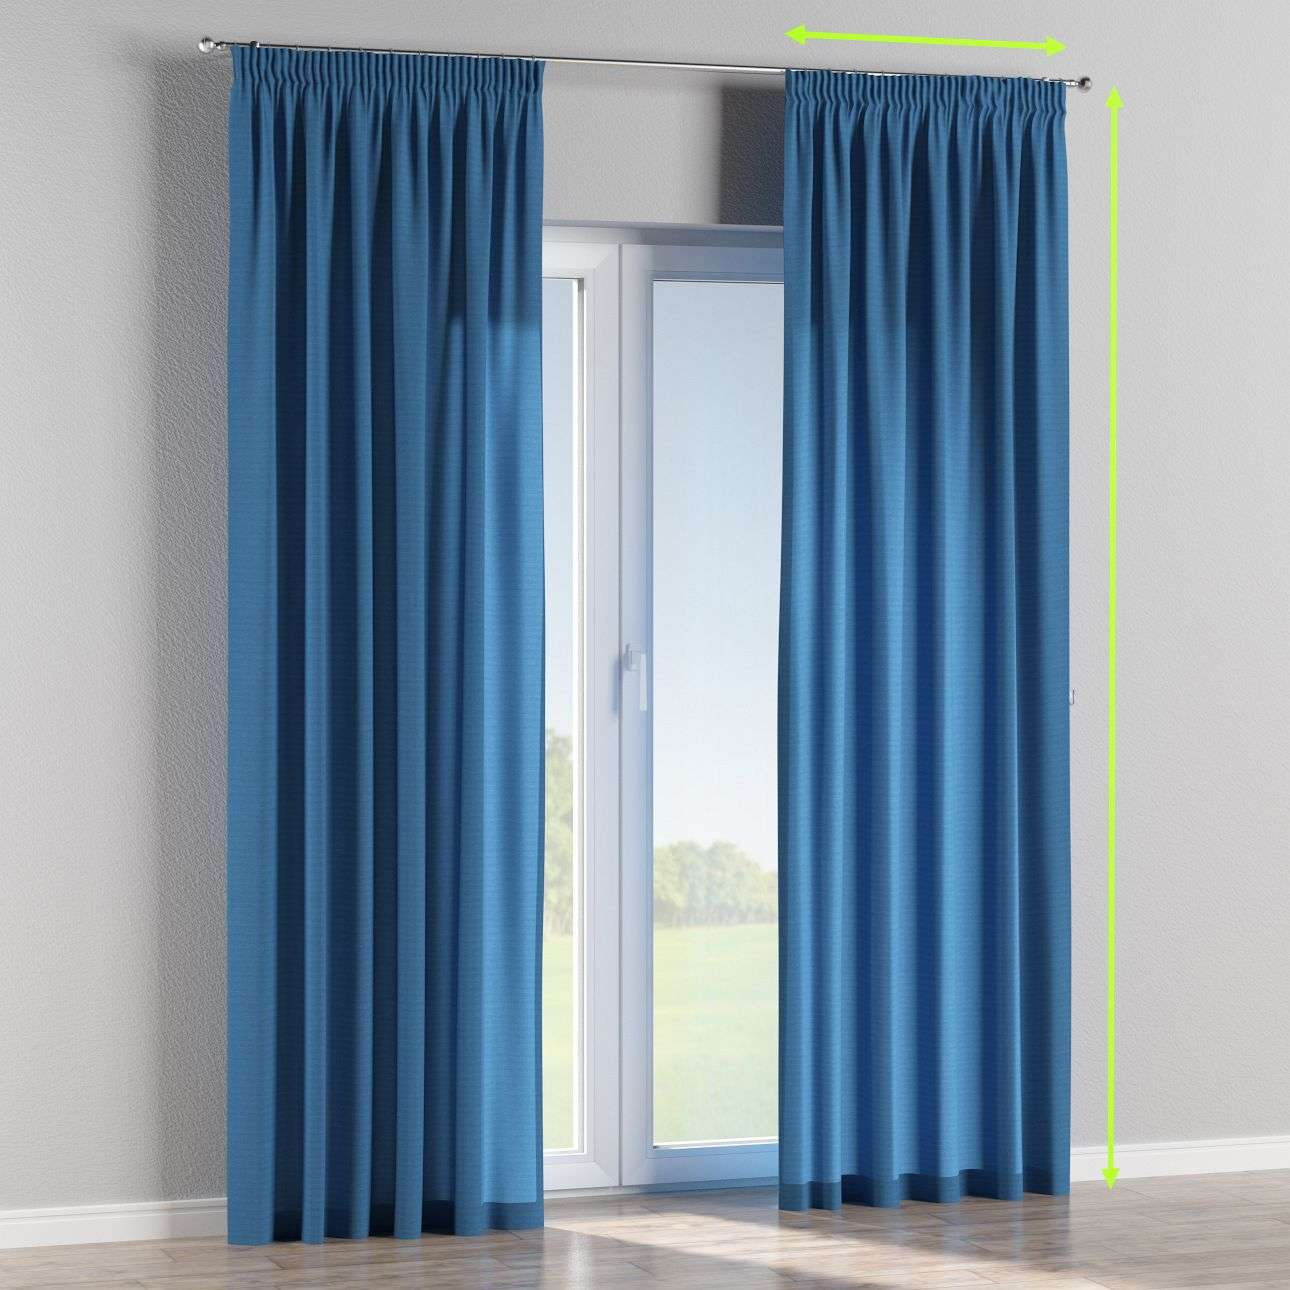 Pencil pleat lined curtains in collection Jupiter, fabric: 127-61